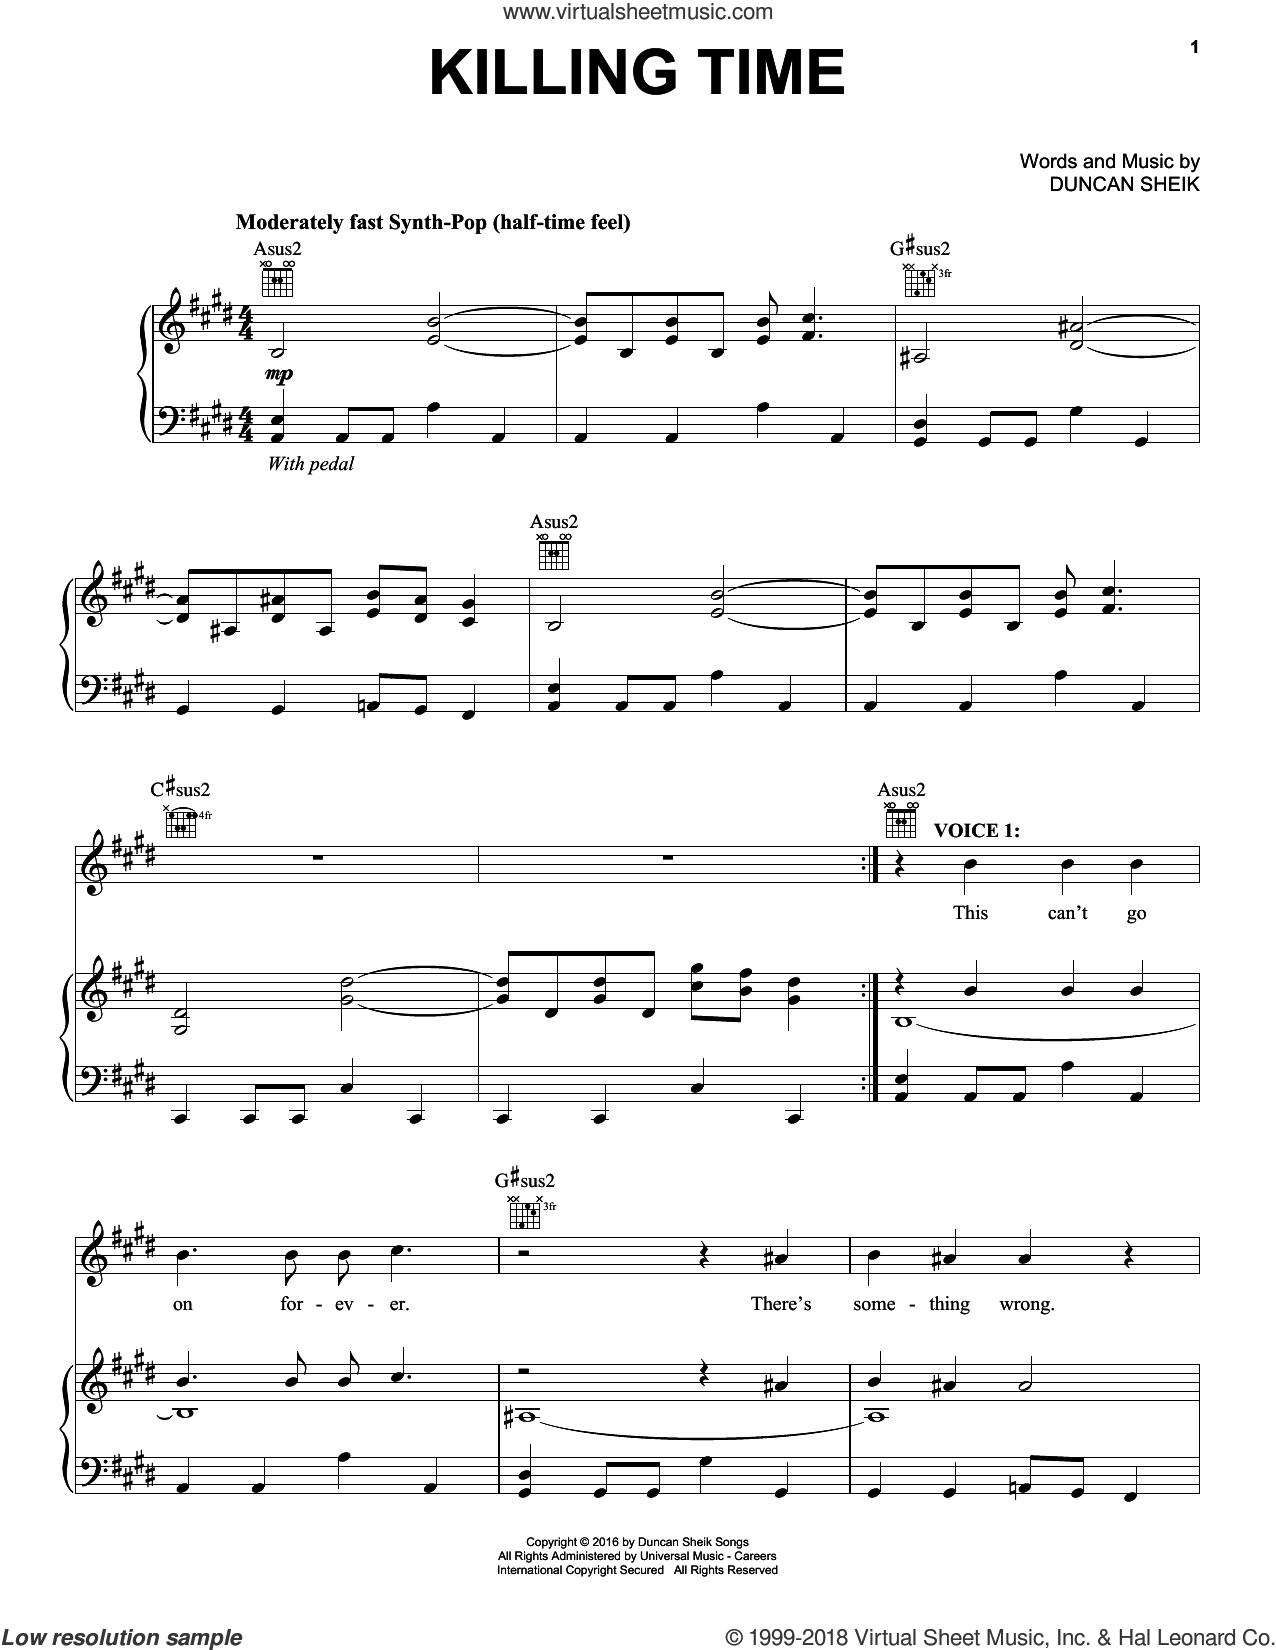 Killing Time sheet music for voice, piano or guitar by Duncan Sheik, intermediate. Score Image Preview.